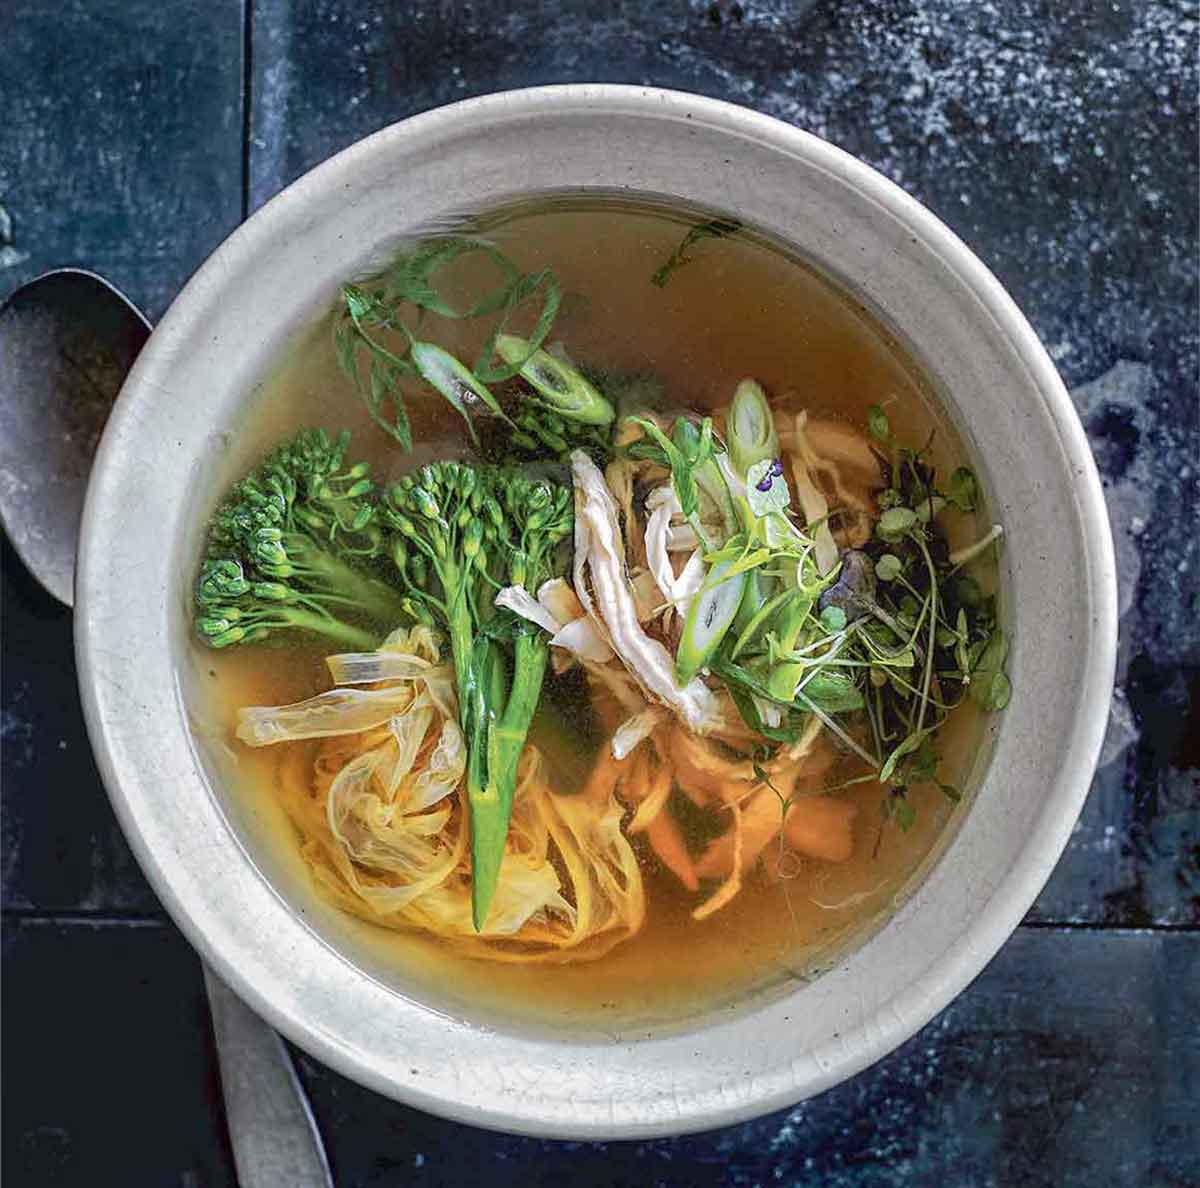 A bowl of healthy egg drop soup with shredded chicken, green onions, broccoli rabe, noodles, and sprouts